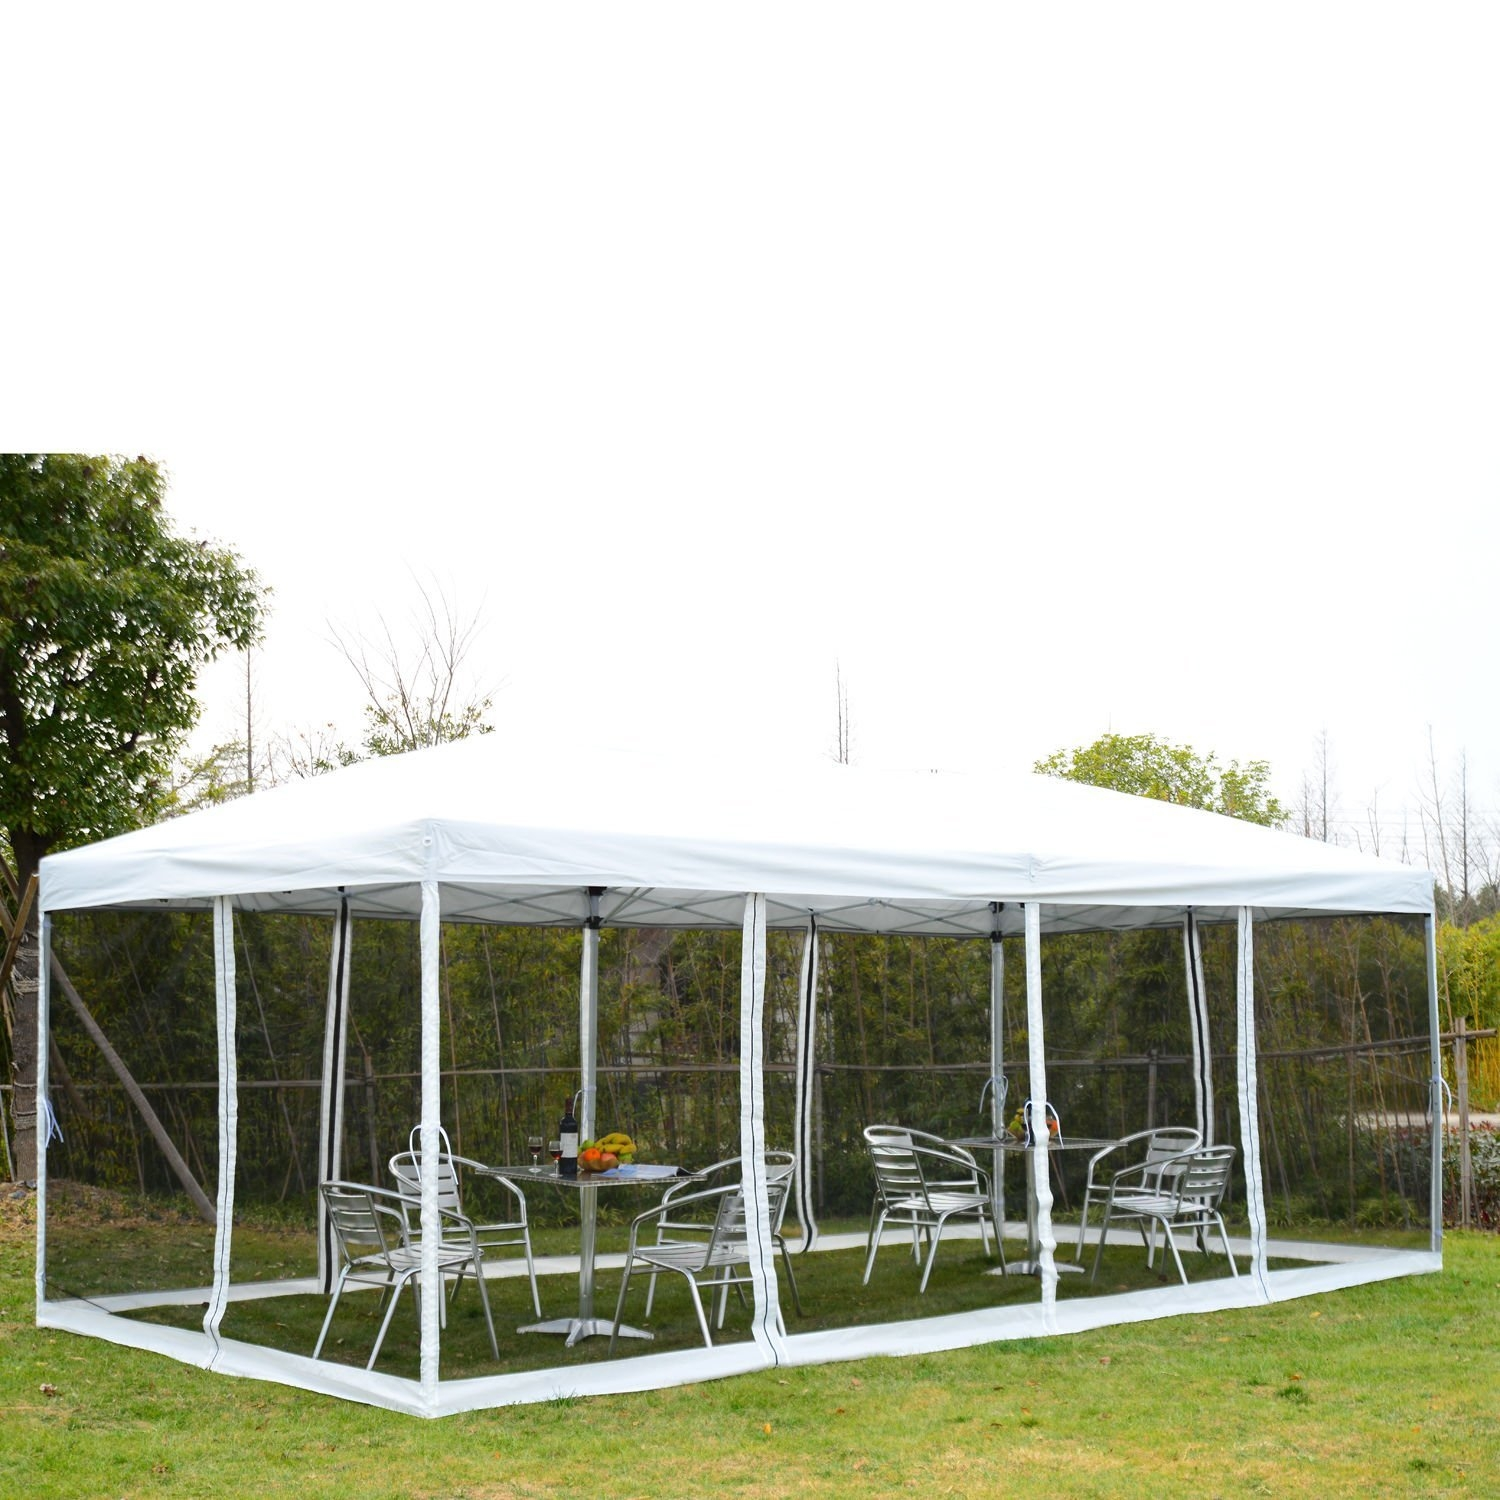 New MTN-G Outdoor 10x20ft Pop Up Party Tent Canopy Gazebo W/